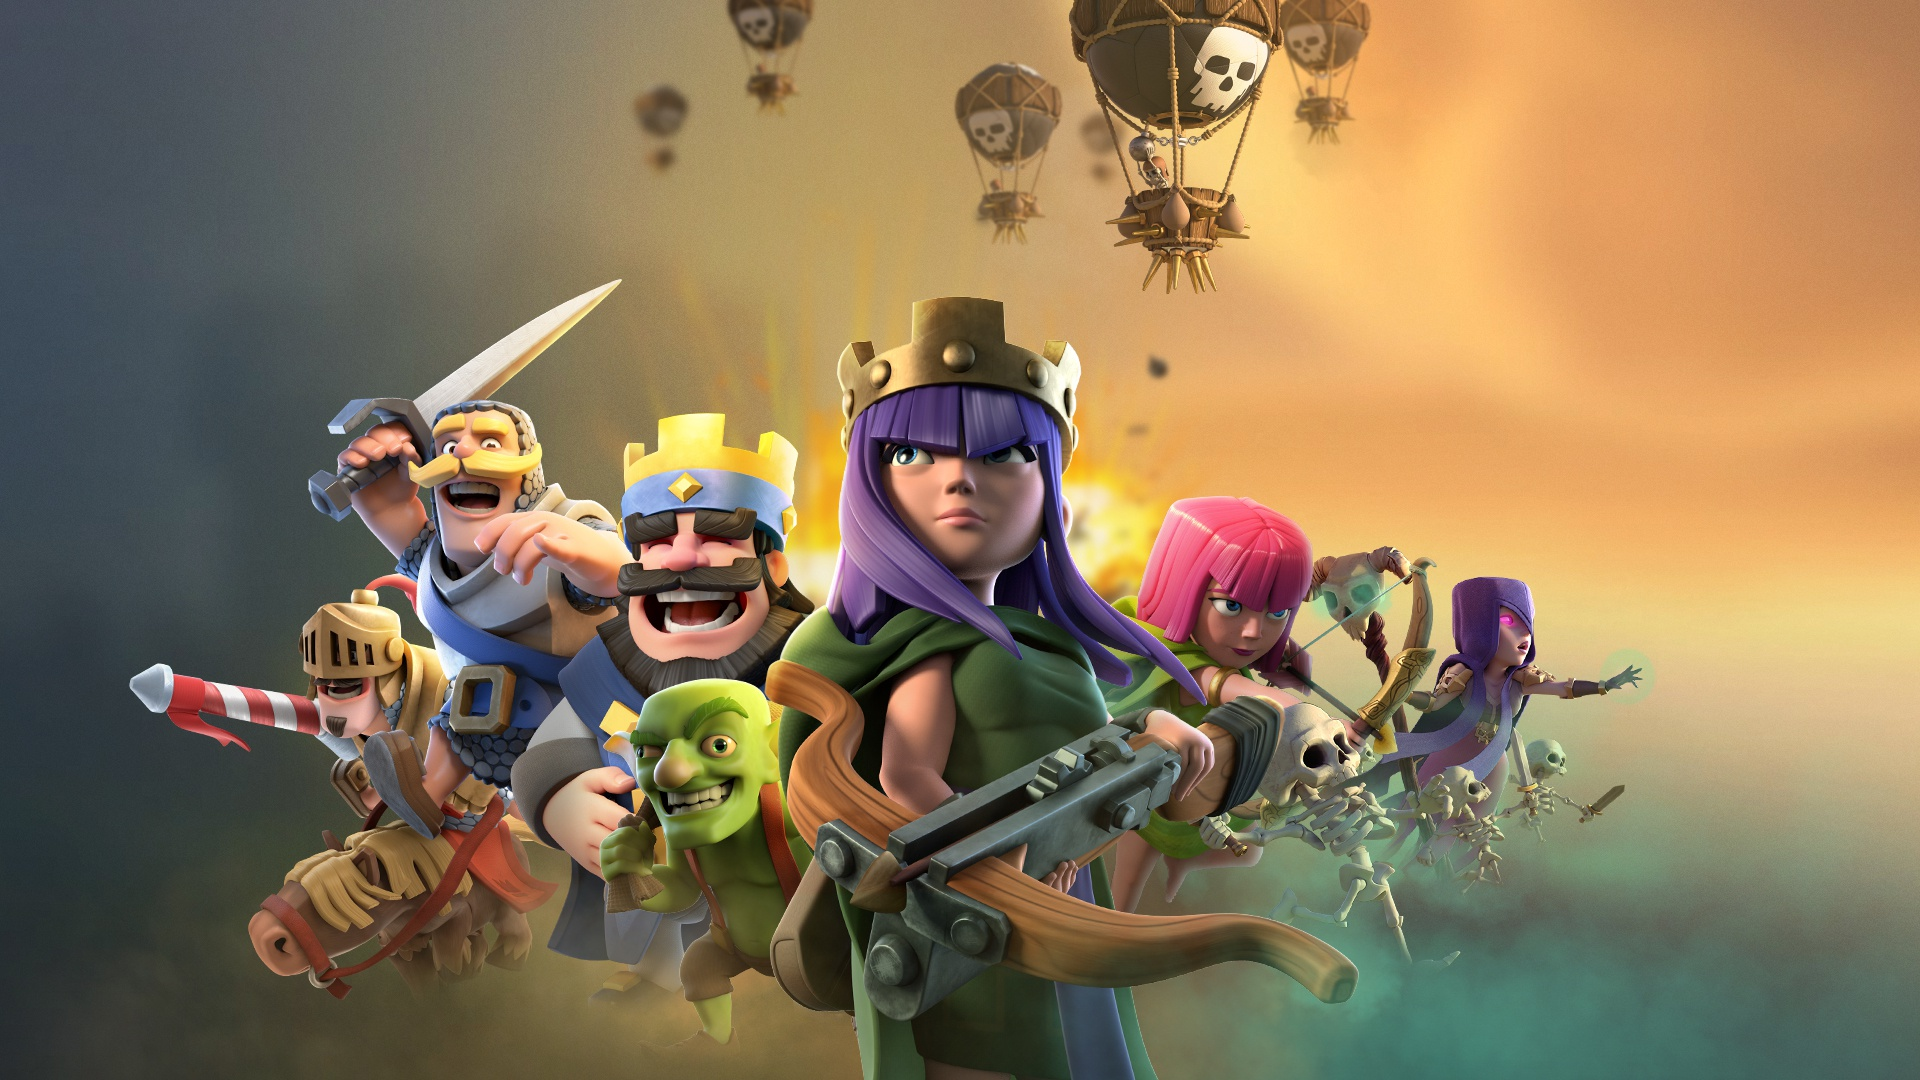 2048x1152 Clash Of Clans Clash Royale Supercell Games ...